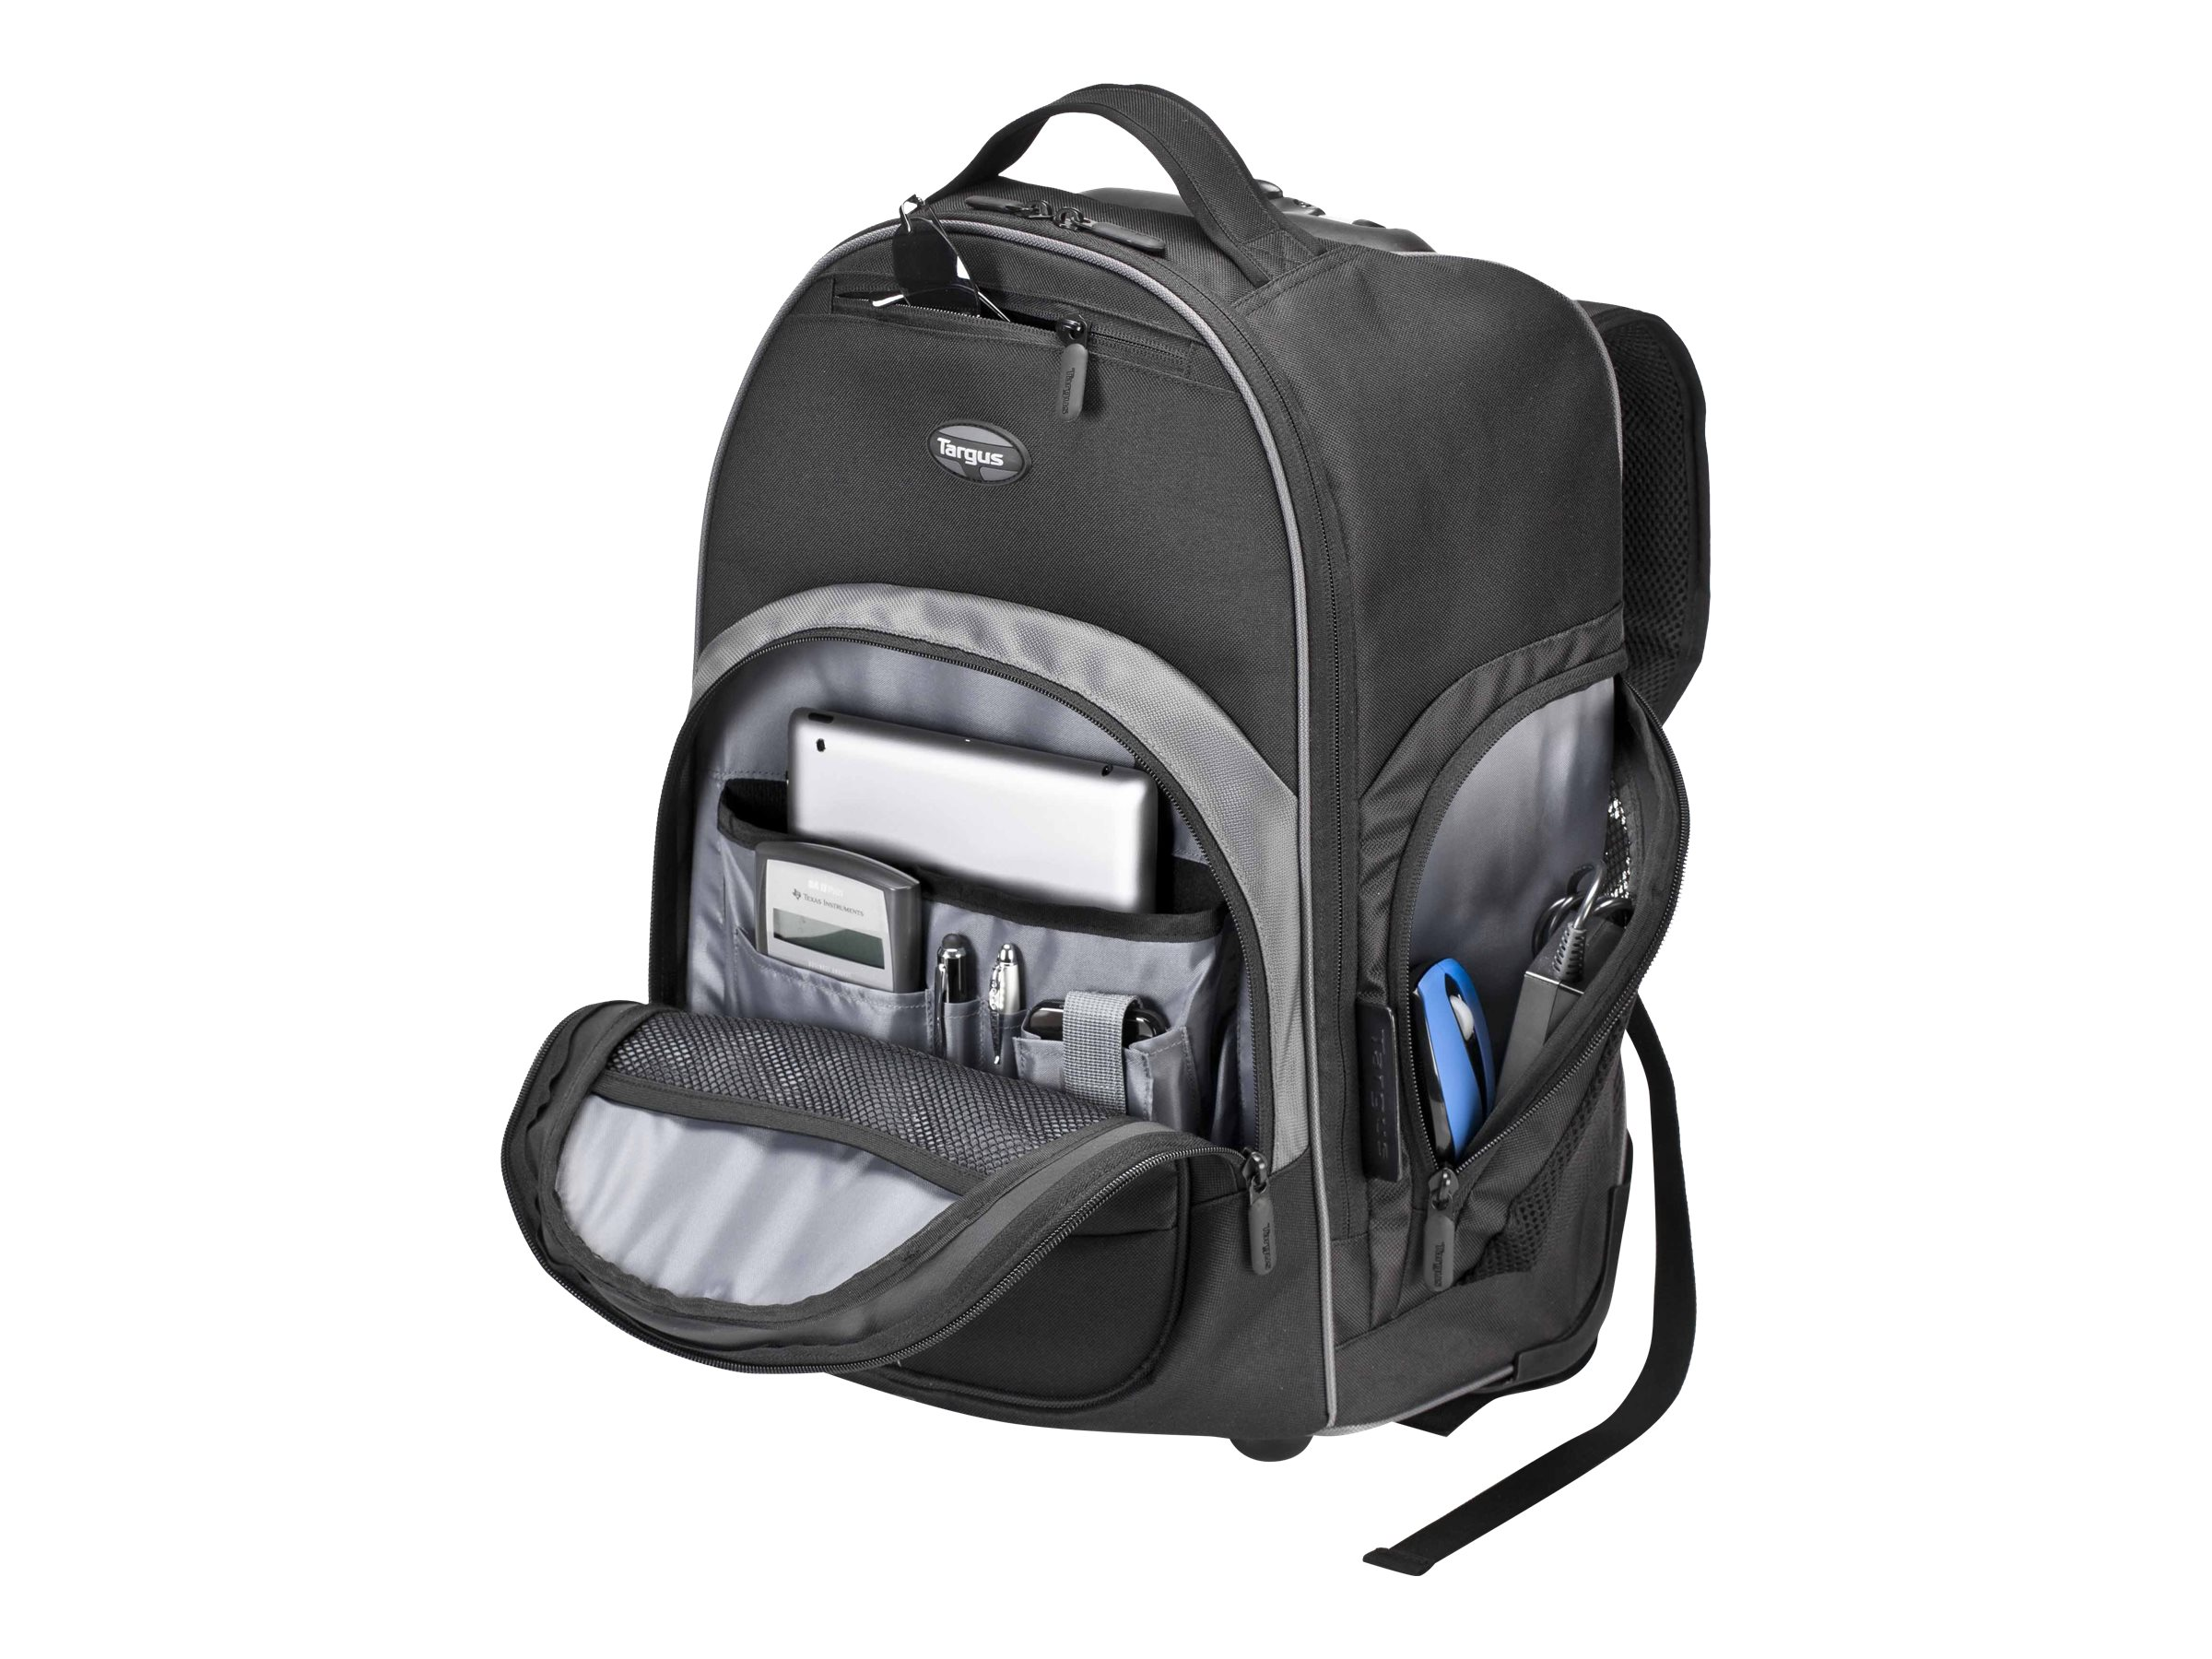 Targus Compact Rolling Backpack, Black